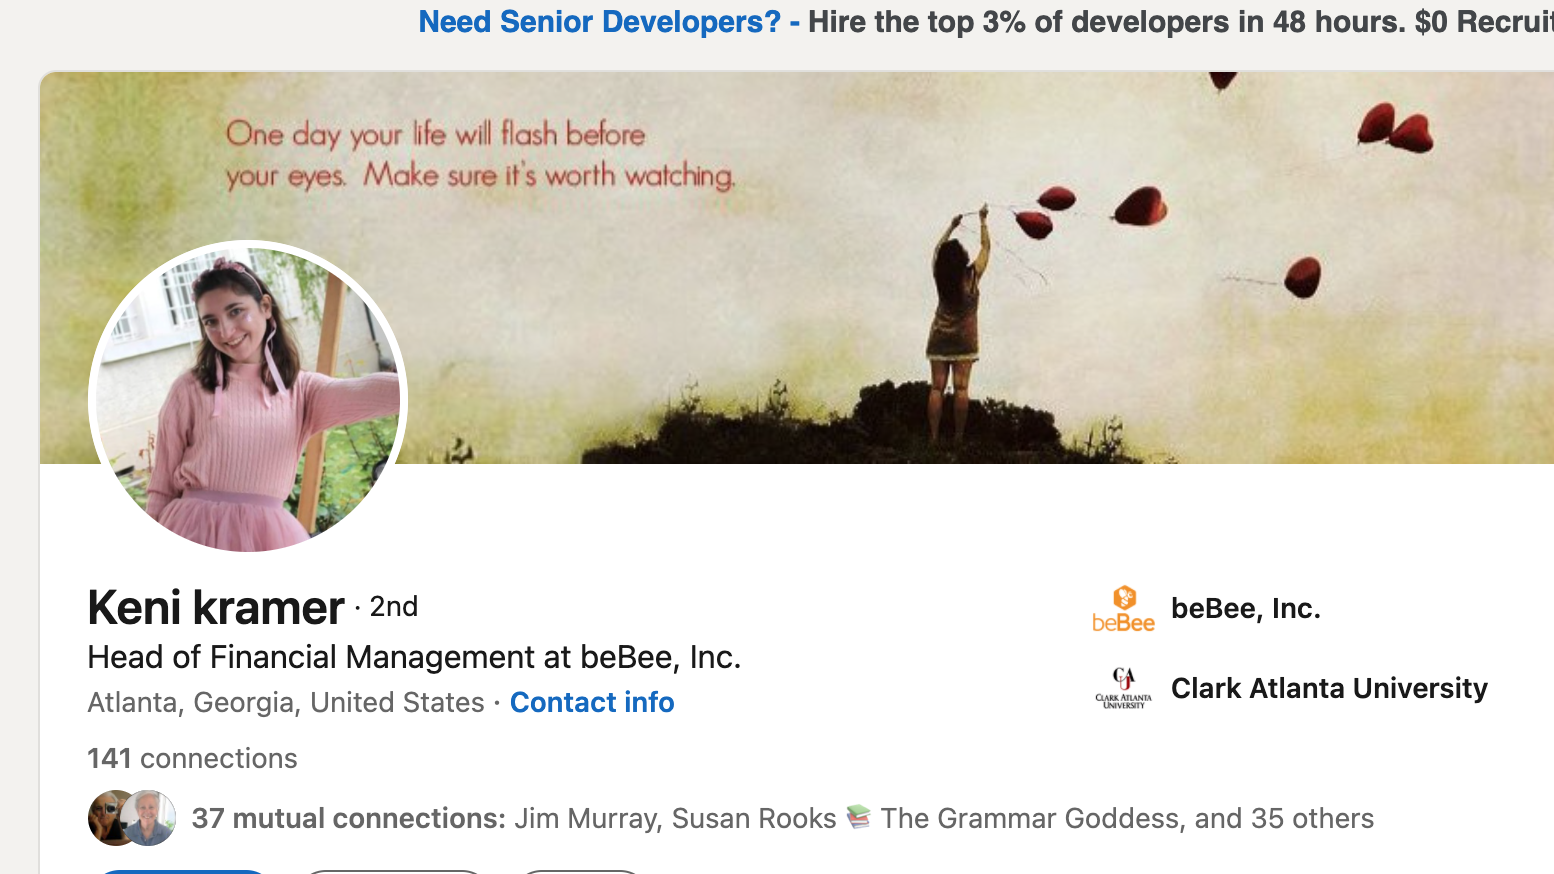 Need Senior Developers? - Hire the top 3% of developers in 48 hours. $0 Recrui     vw One day your life wil flash before sg ¢ ¥ your eyes. Make sure it's worth watching. oo Keni kramer - 2nd beBee, Inc.  Head of Financial Management at beBee, Inc. ]  P . . Atlanta, Georgia, United States - Contact info ae Clark Atlanta University  141 connections  €l 37 mutual connections: Jim Murray, Susan Rooks ¥ The Grammar Goddess, and 35 others